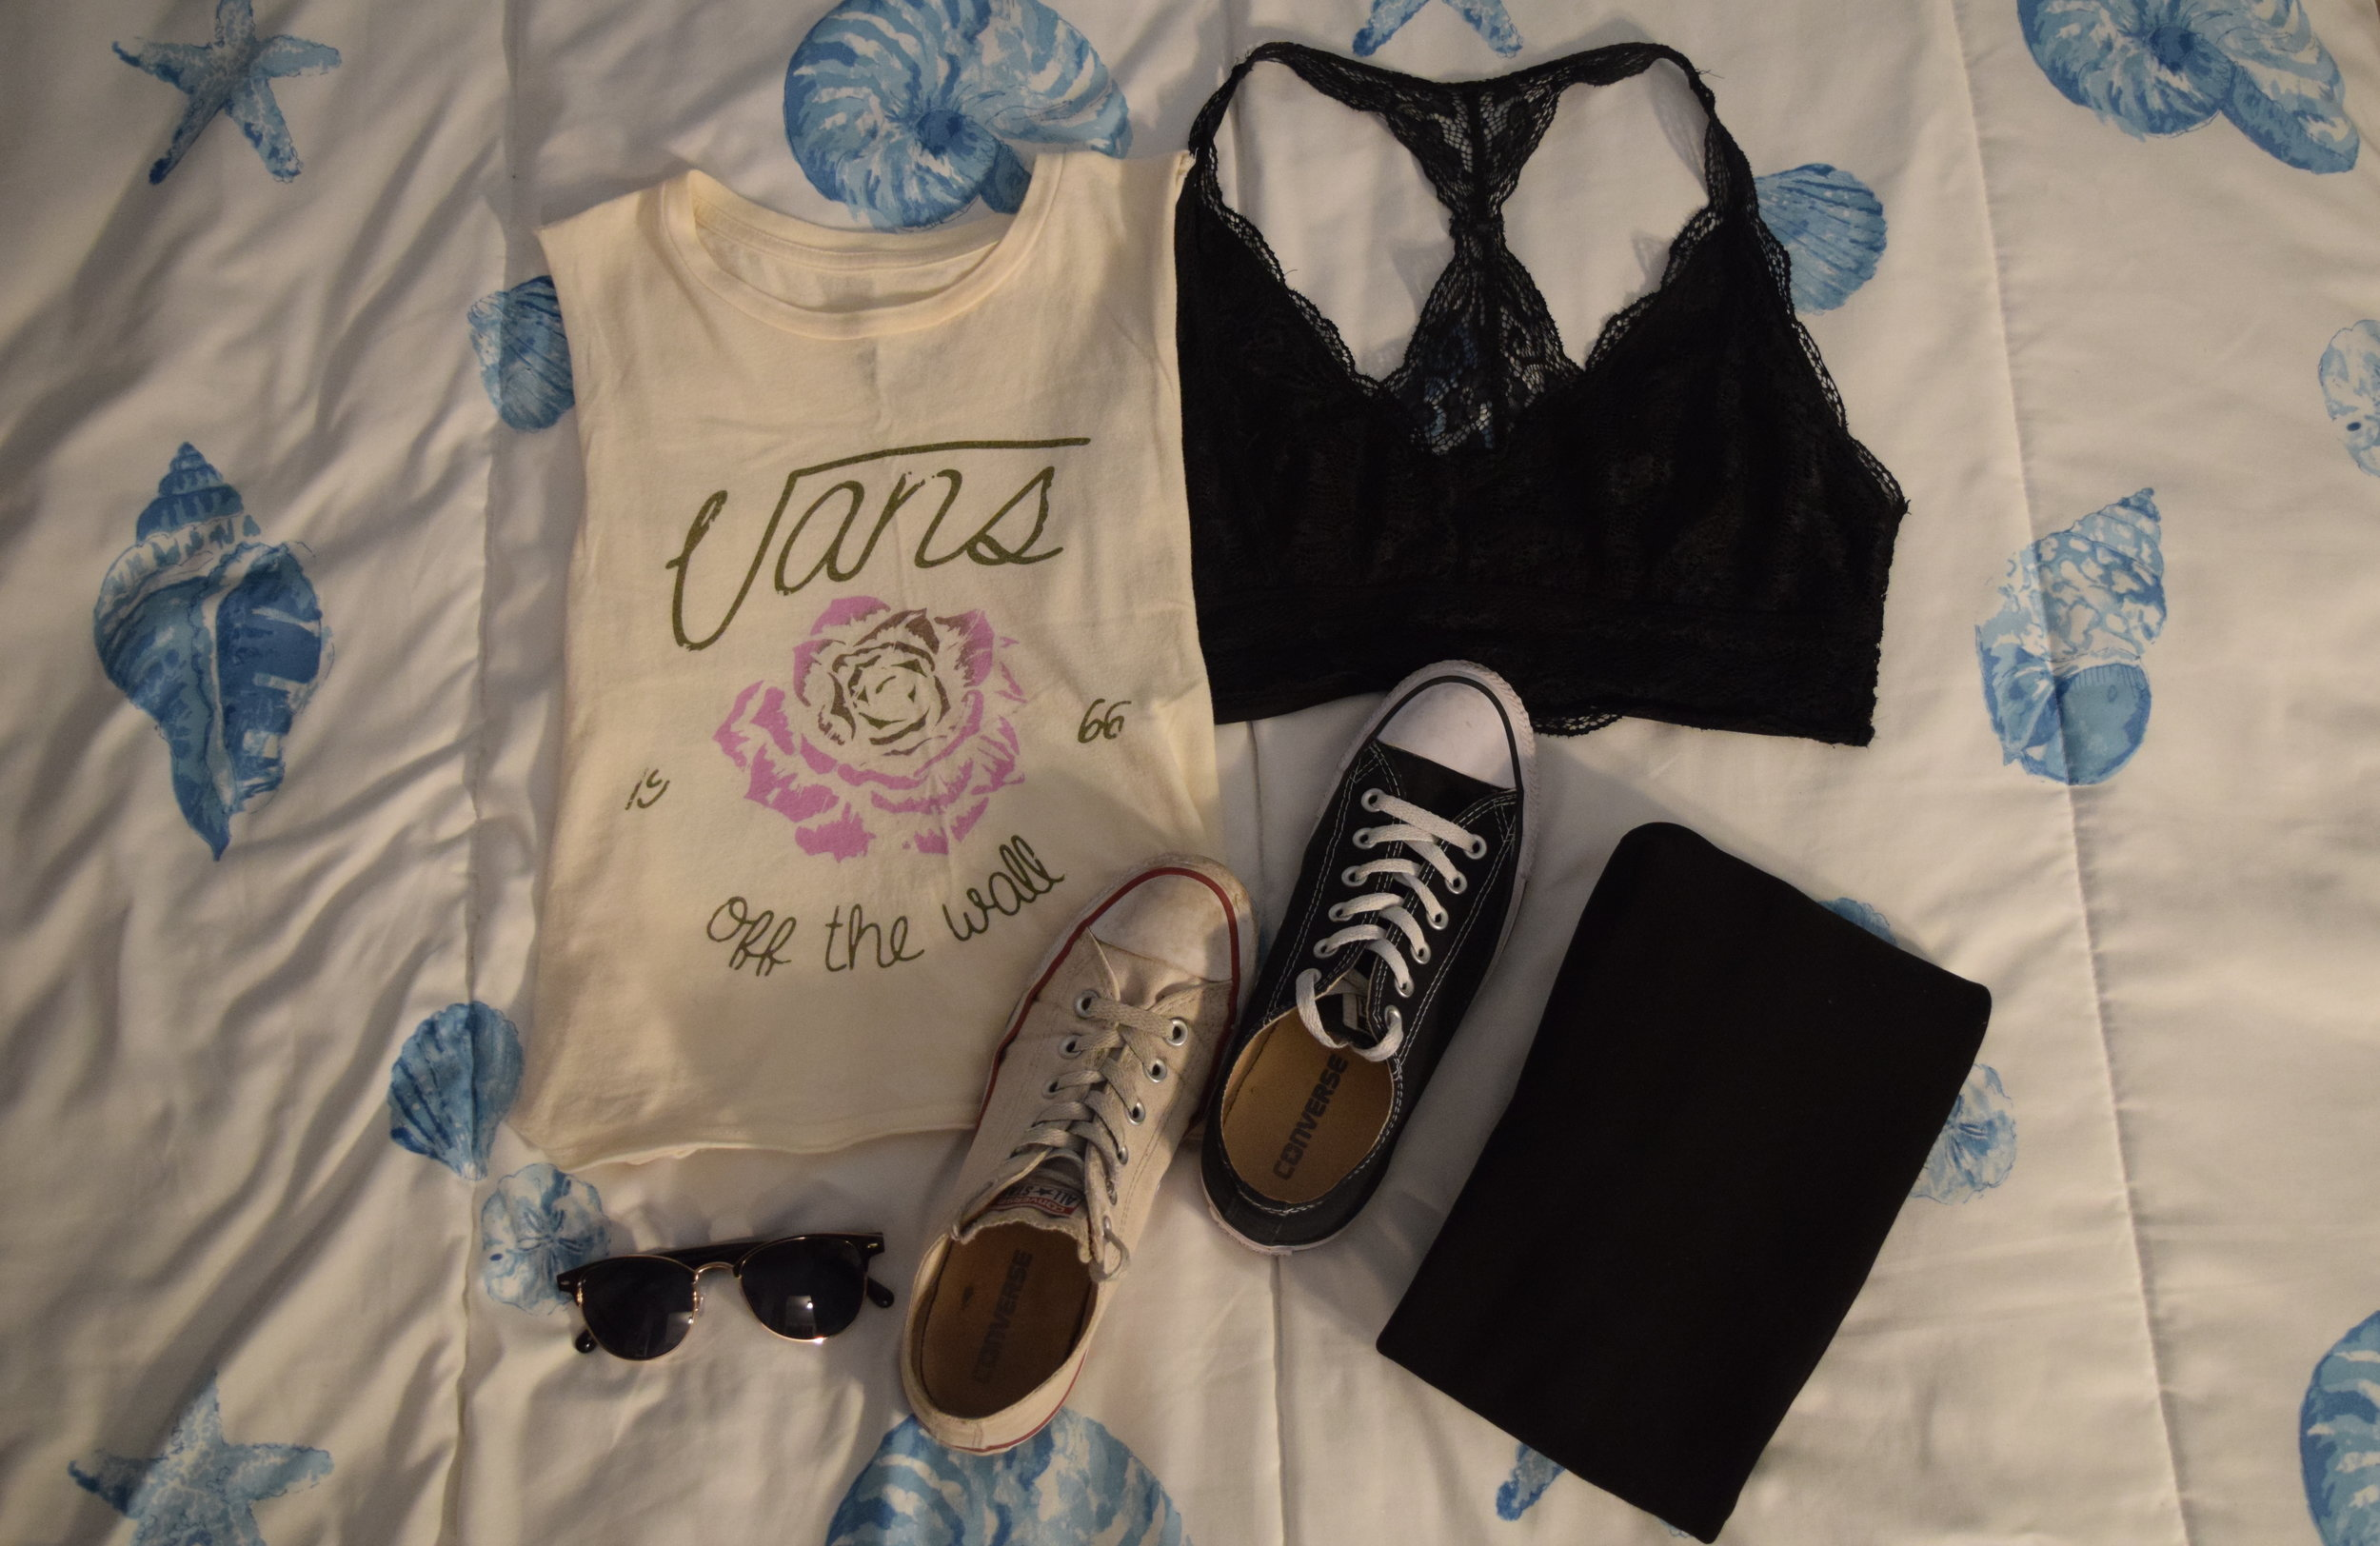 Shirt (no longer being sold at  Vans ).  Bralette .  Leggings .  White Converse .  Black Converse .  Sunglasses .